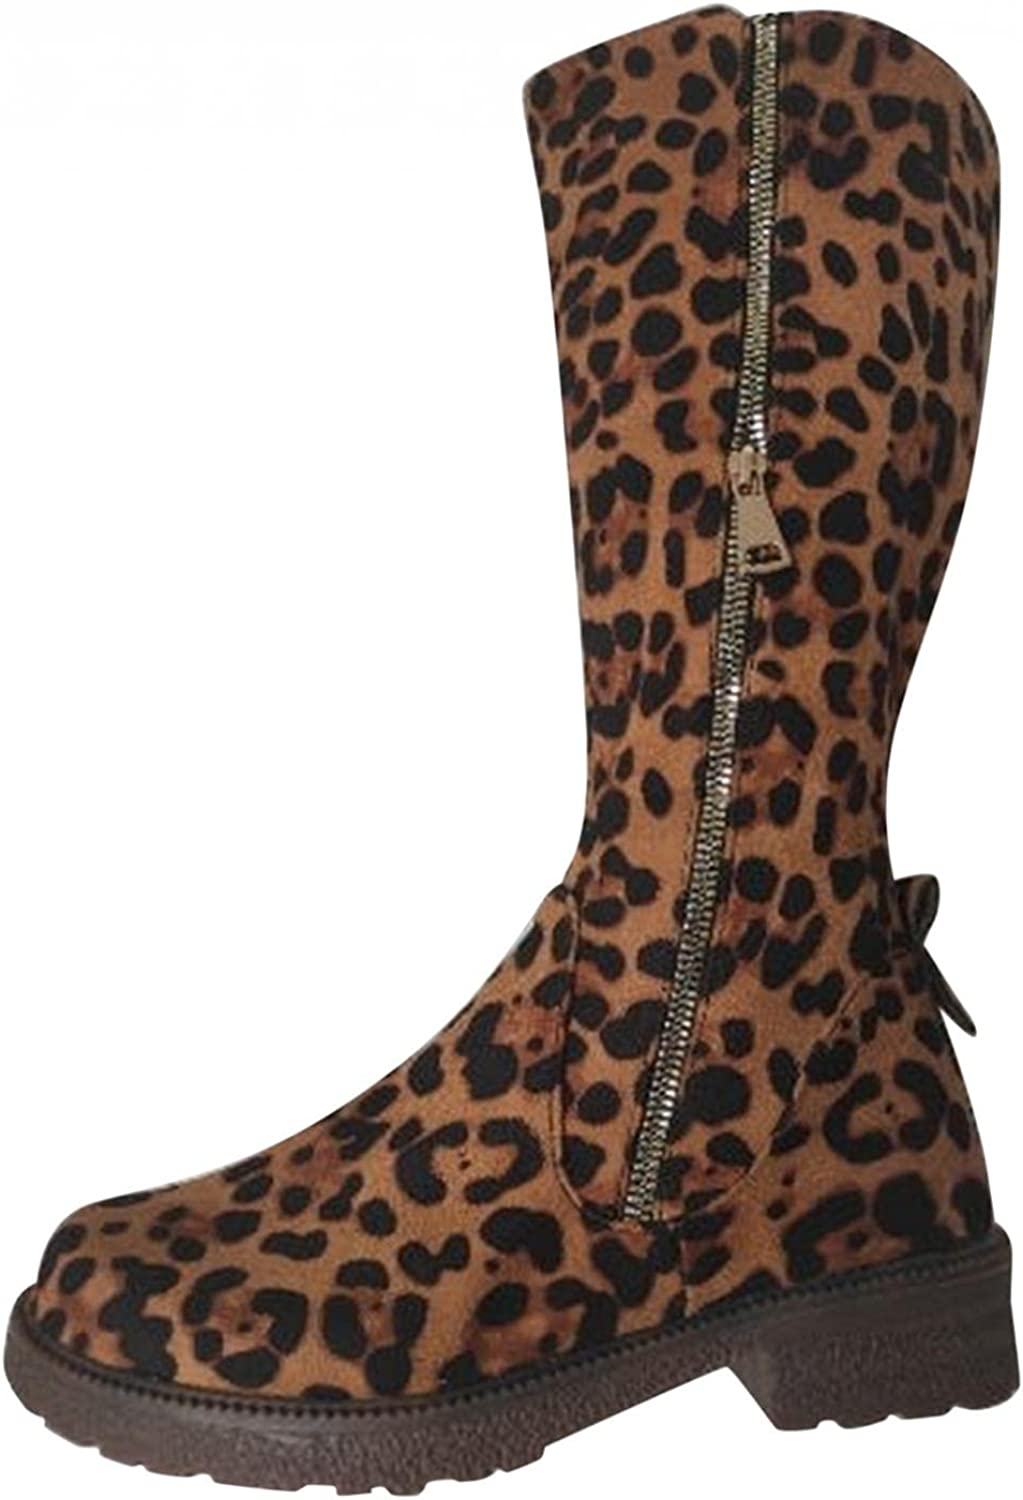 AIHOU Ankle Boots for Women Leopard Zipper Platform Boots Western Cowboy Cowgirl Mid Calf Boots Shoes Riding Boots